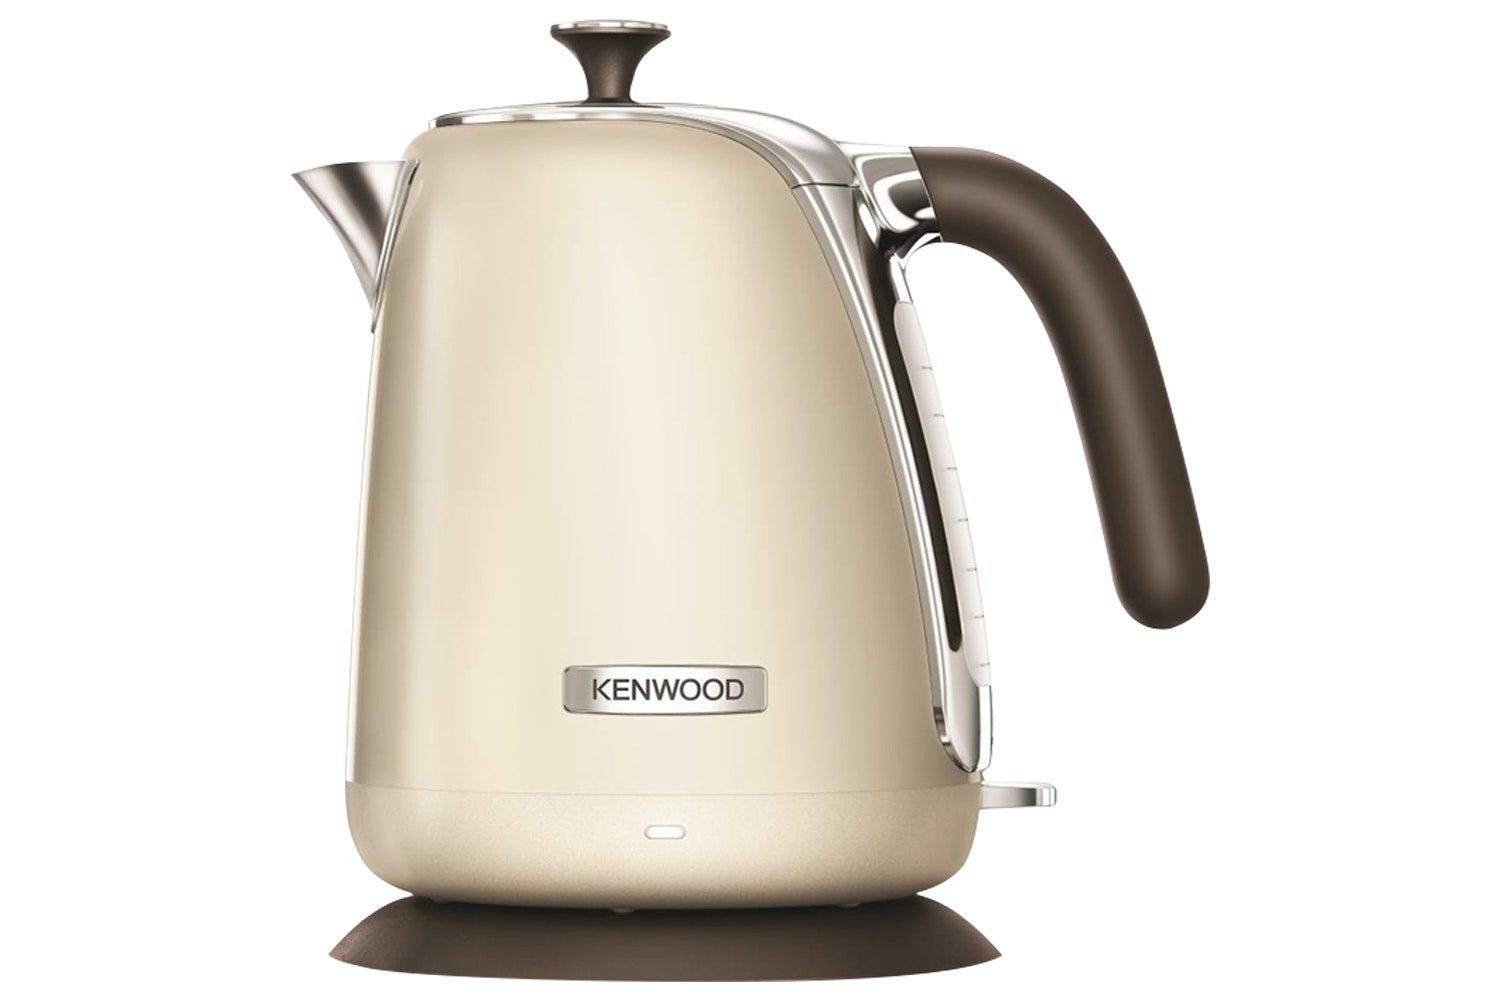 Kenwood 1.7L Turbo Kettle | ZJM300CR